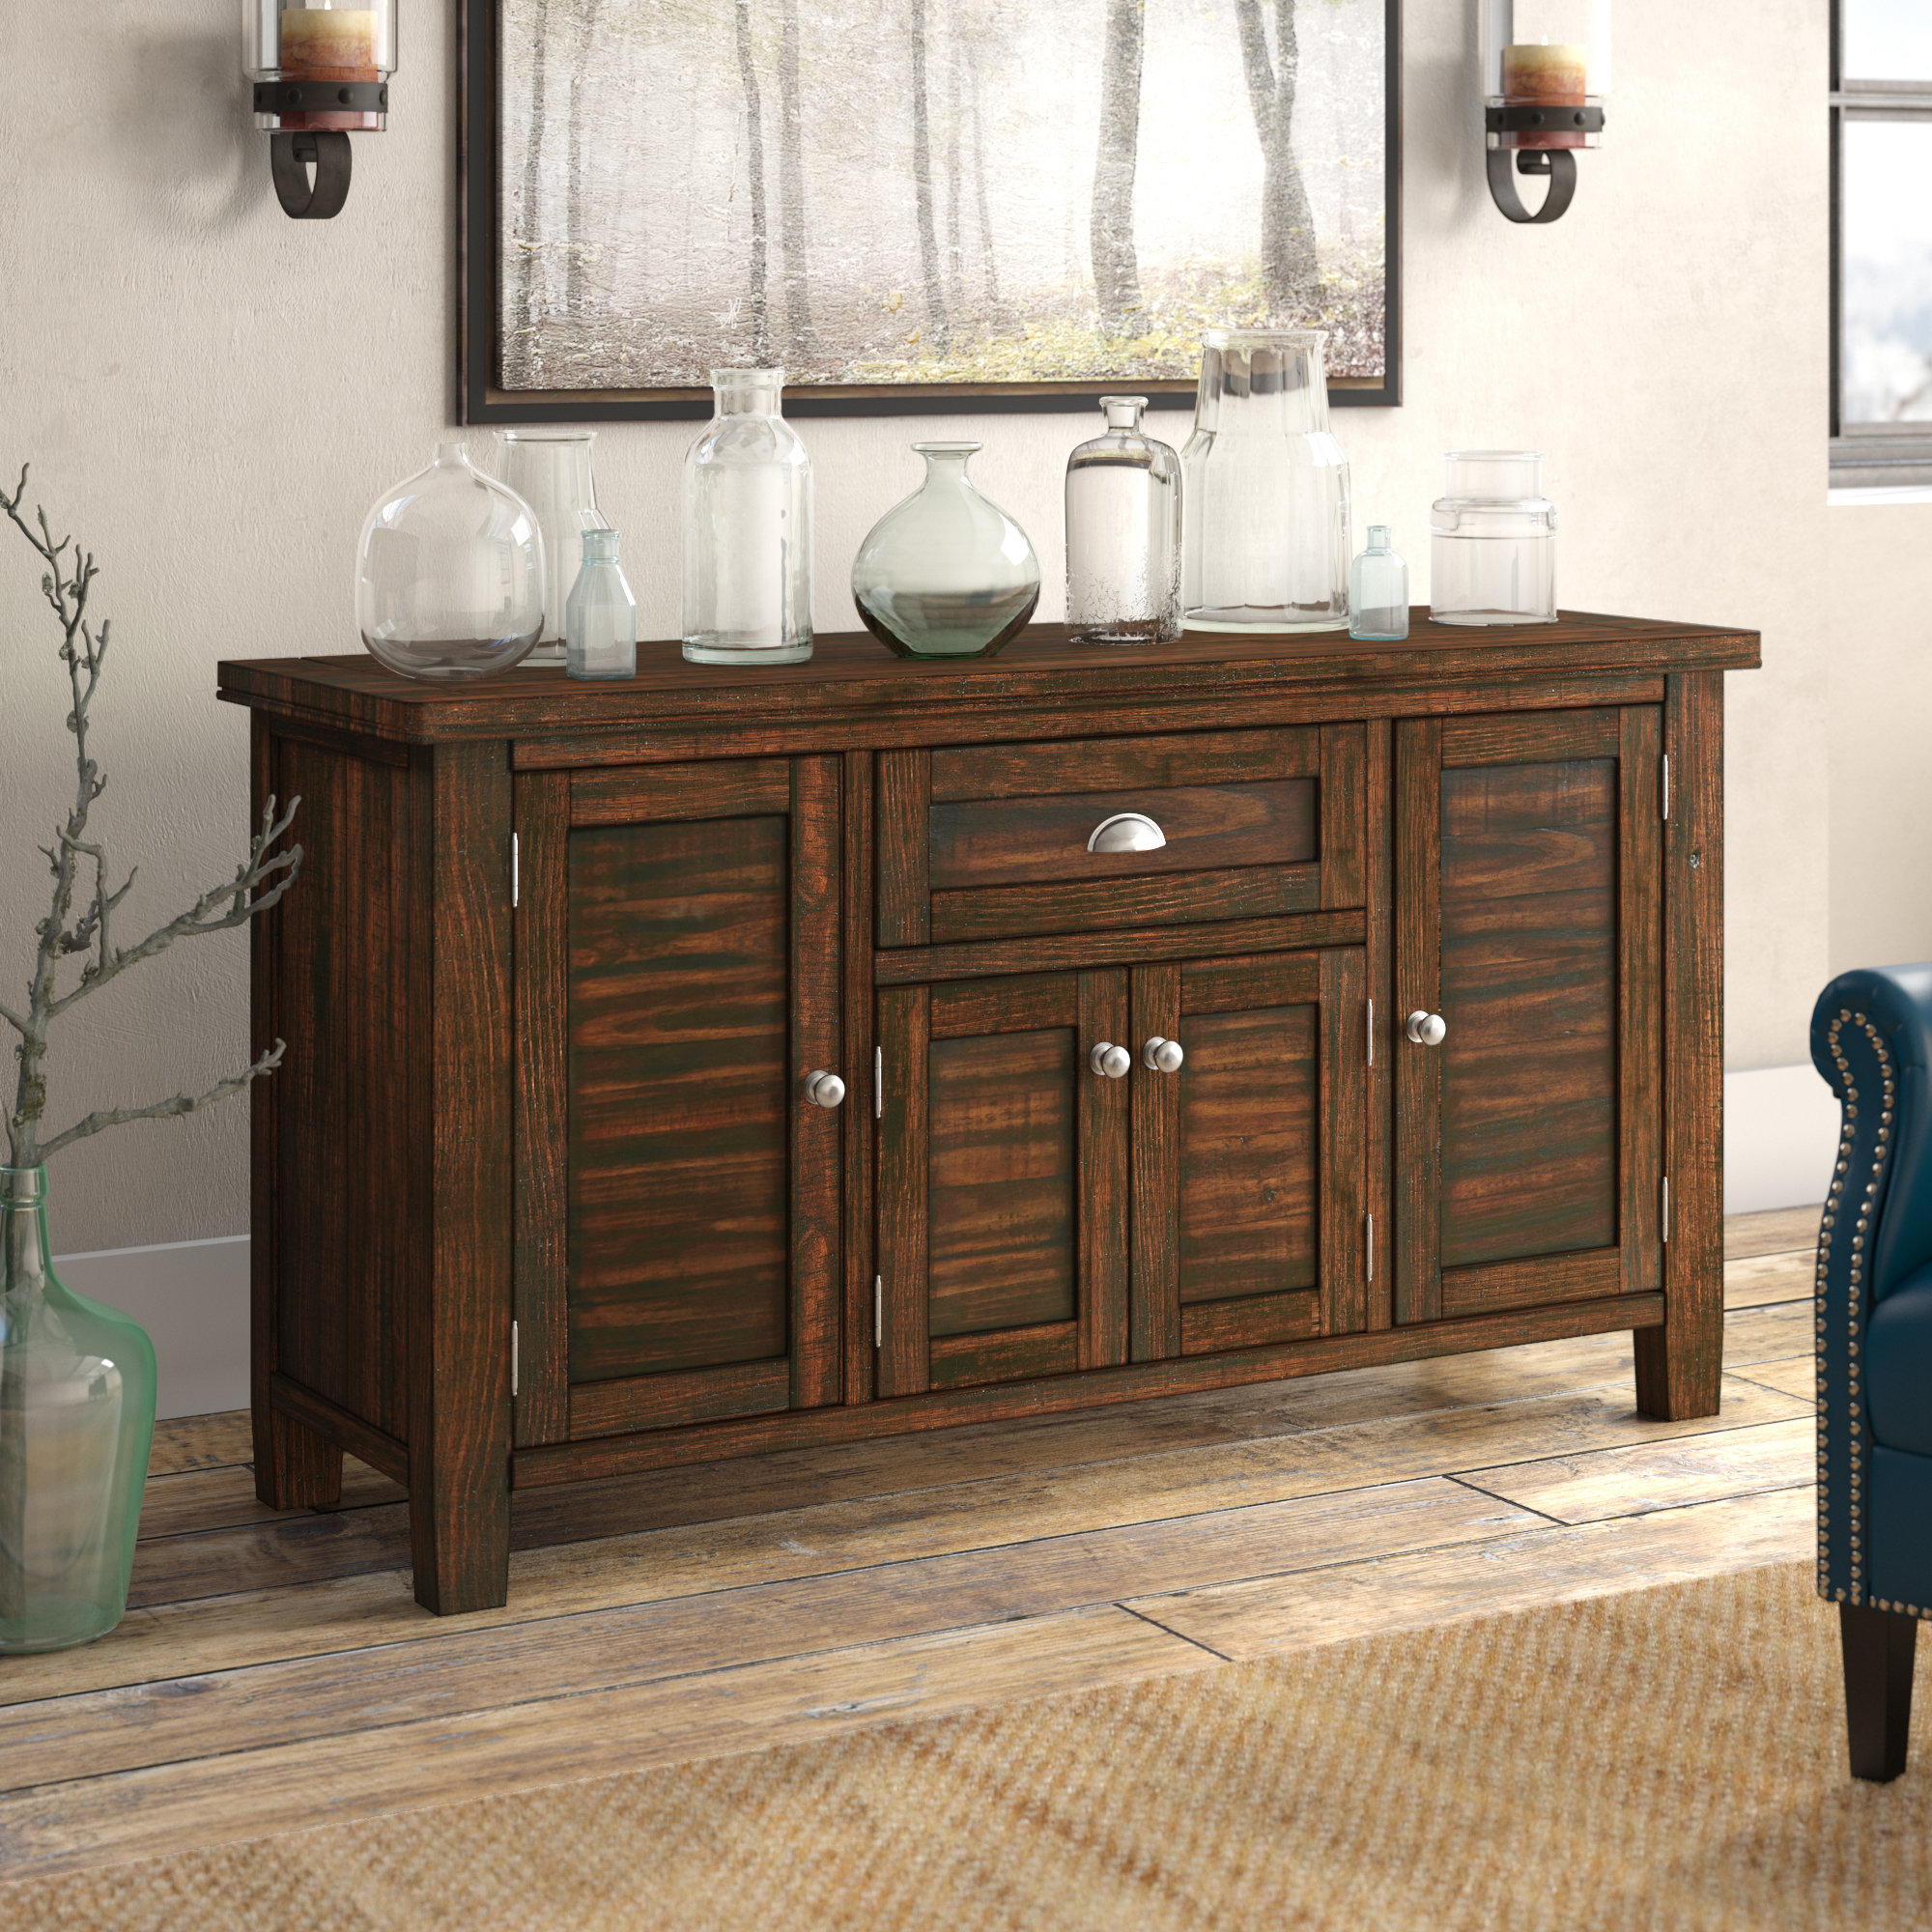 2019 Chaffins Sideboard Throughout Chaffins Sideboards (Gallery 2 of 20)